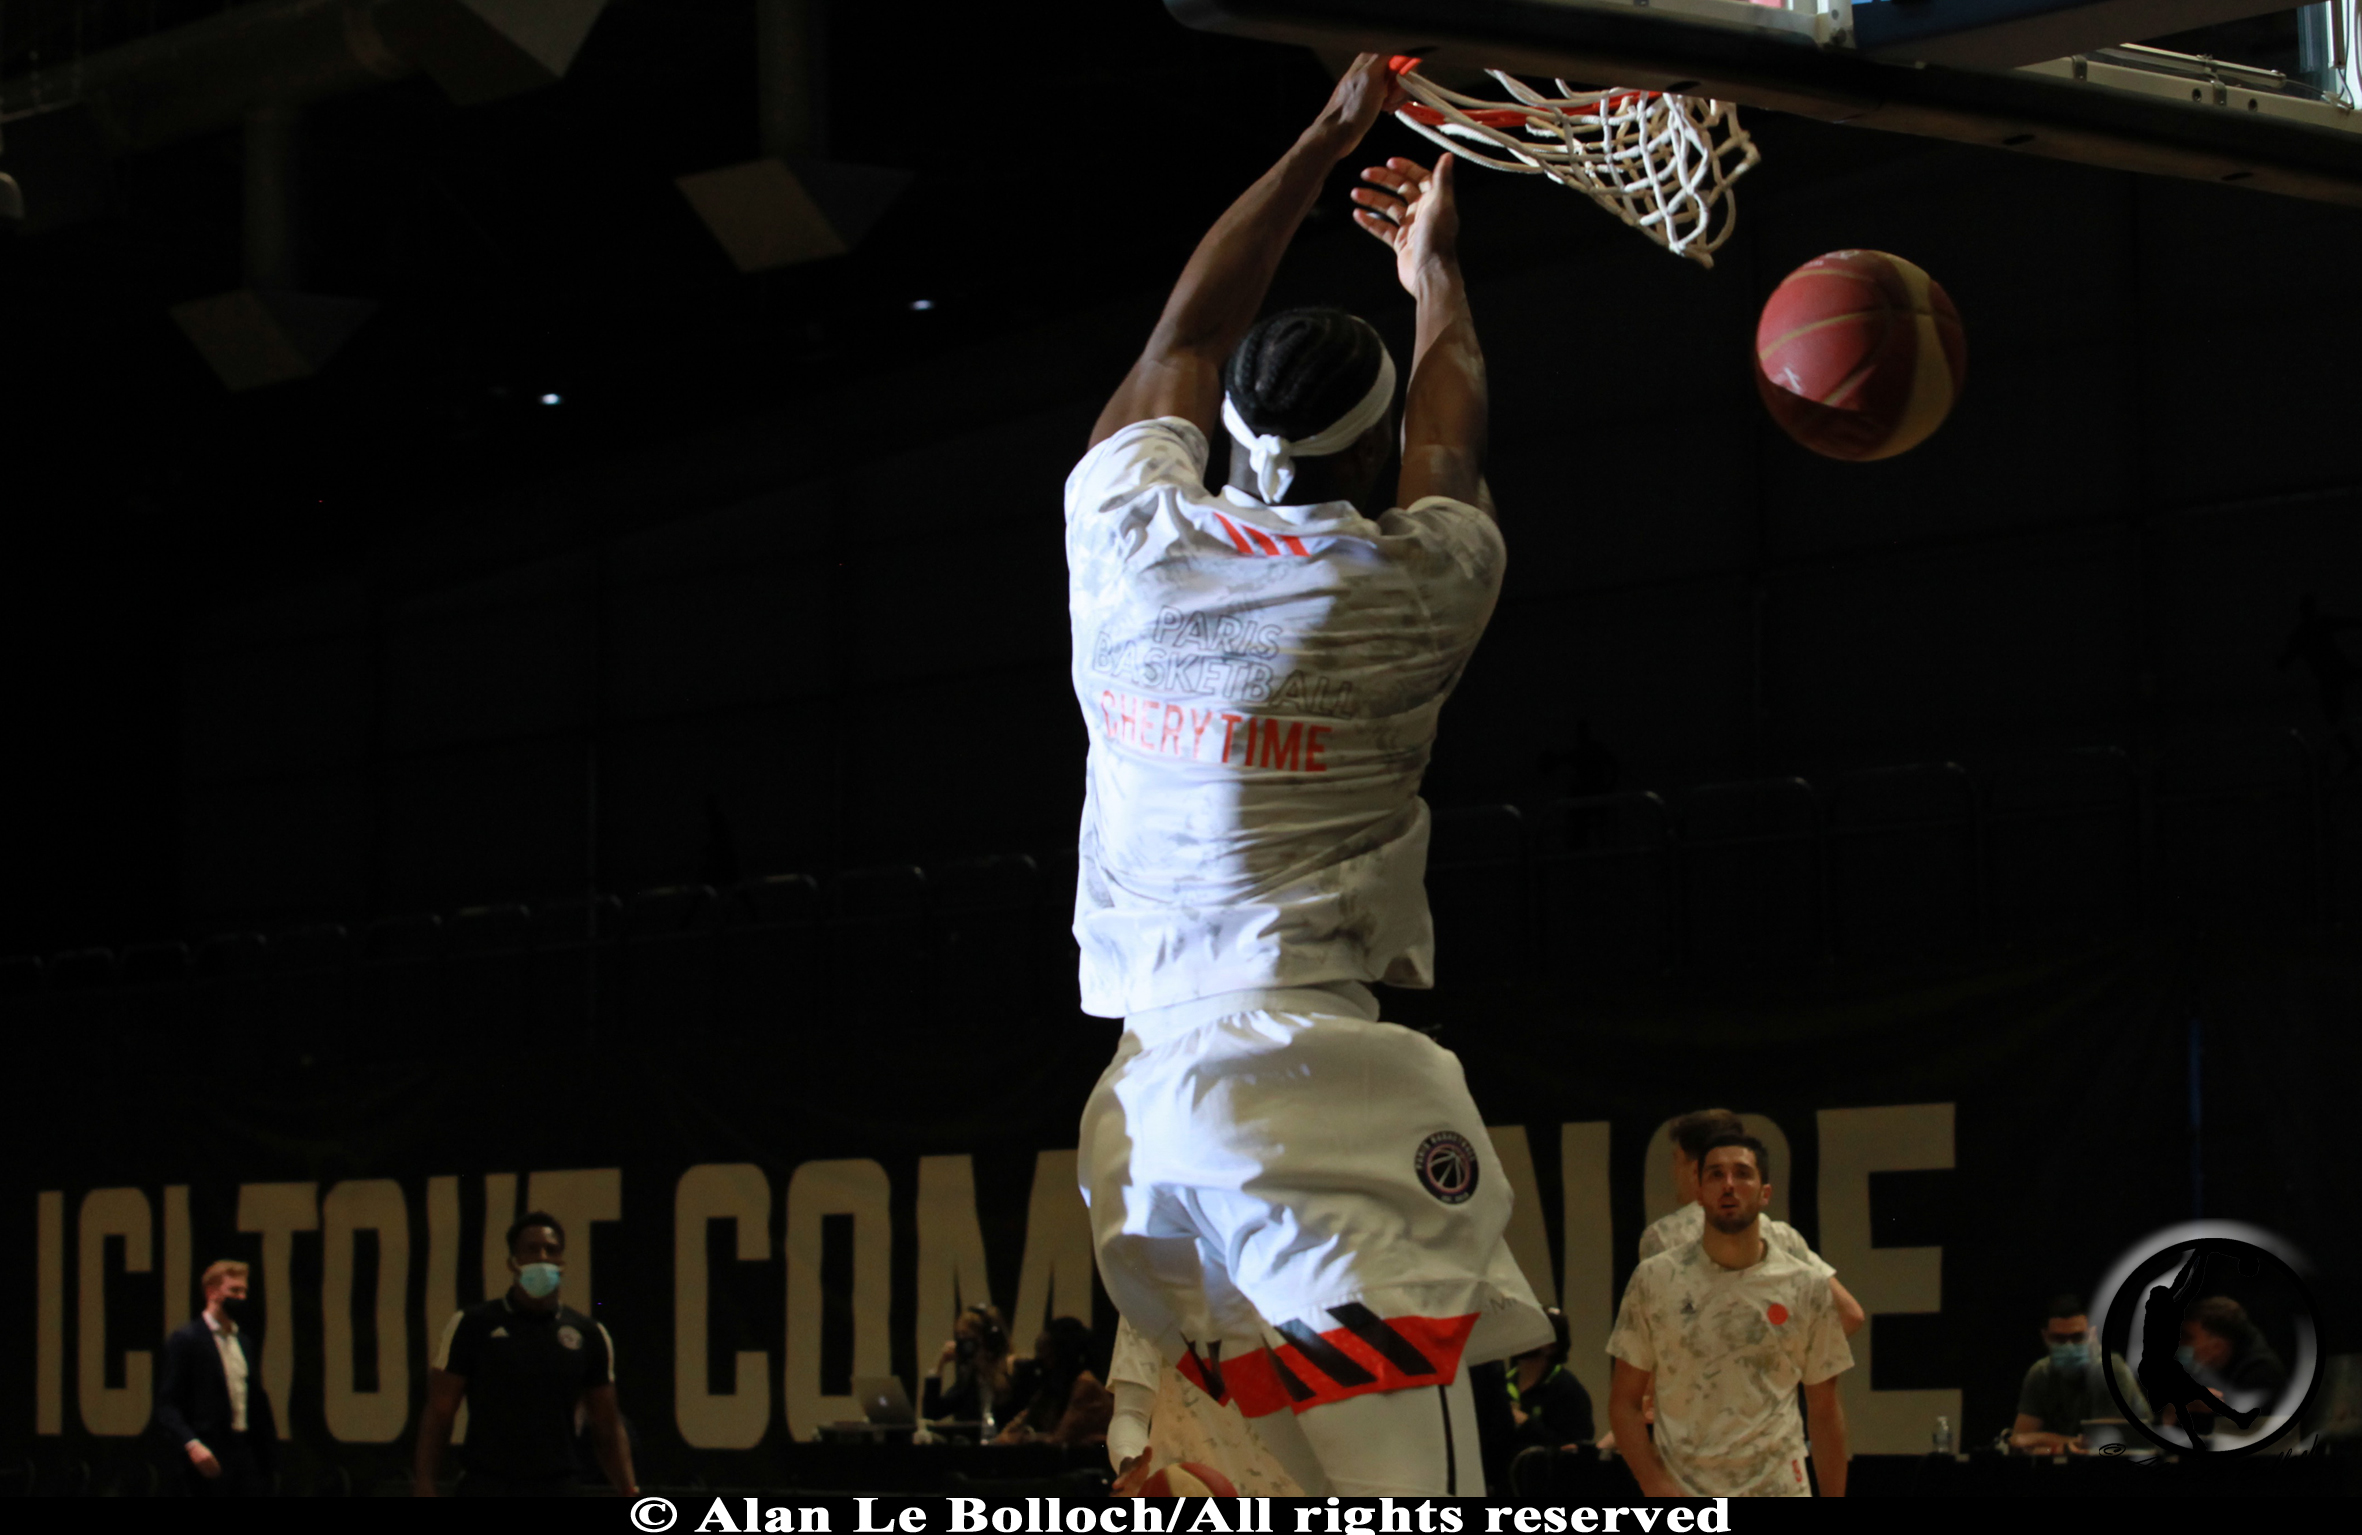 Valentin Chery dunk - Paris Basketball